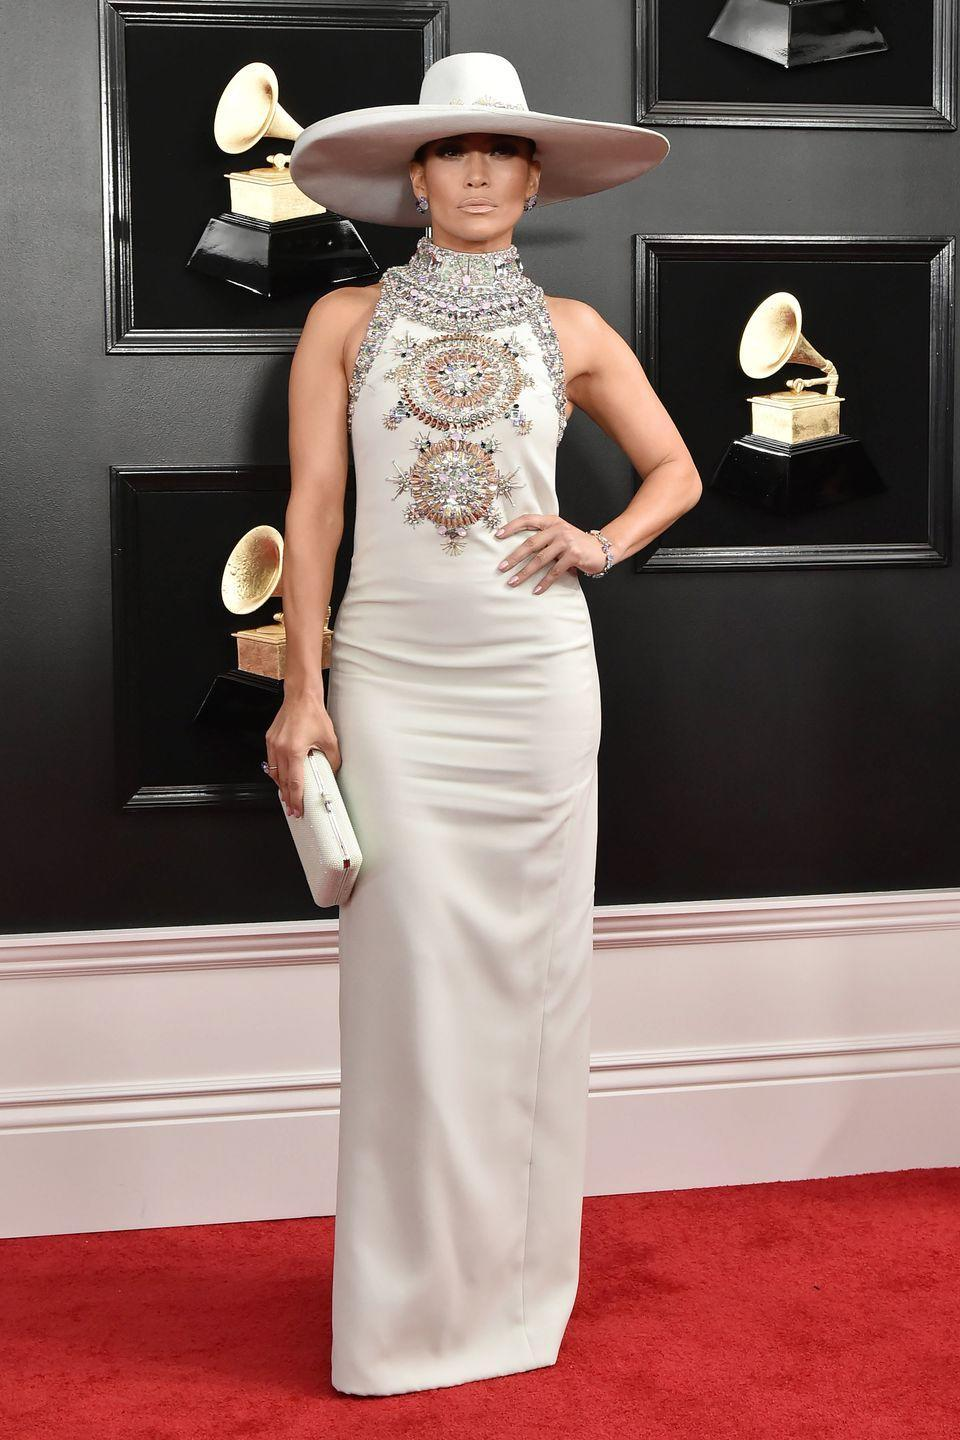 "<p>If anyone can pull off a hat on the red carpet, that person would be J.Lo. Here, she wears a Ralph and Russo dress to the Grammy Awards, where she performed a (<a href=""https://www.cosmopolitan.com/entertainment/a26287610/jennifer-lopez-motown-tribute-grammys-2019-response/"" rel=""nofollow noopener"" target=""_blank"" data-ylk=""slk:somewhat controversial"" class=""link rapid-noclick-resp"">somewhat controversial</a>) Motown tribute. </p>"